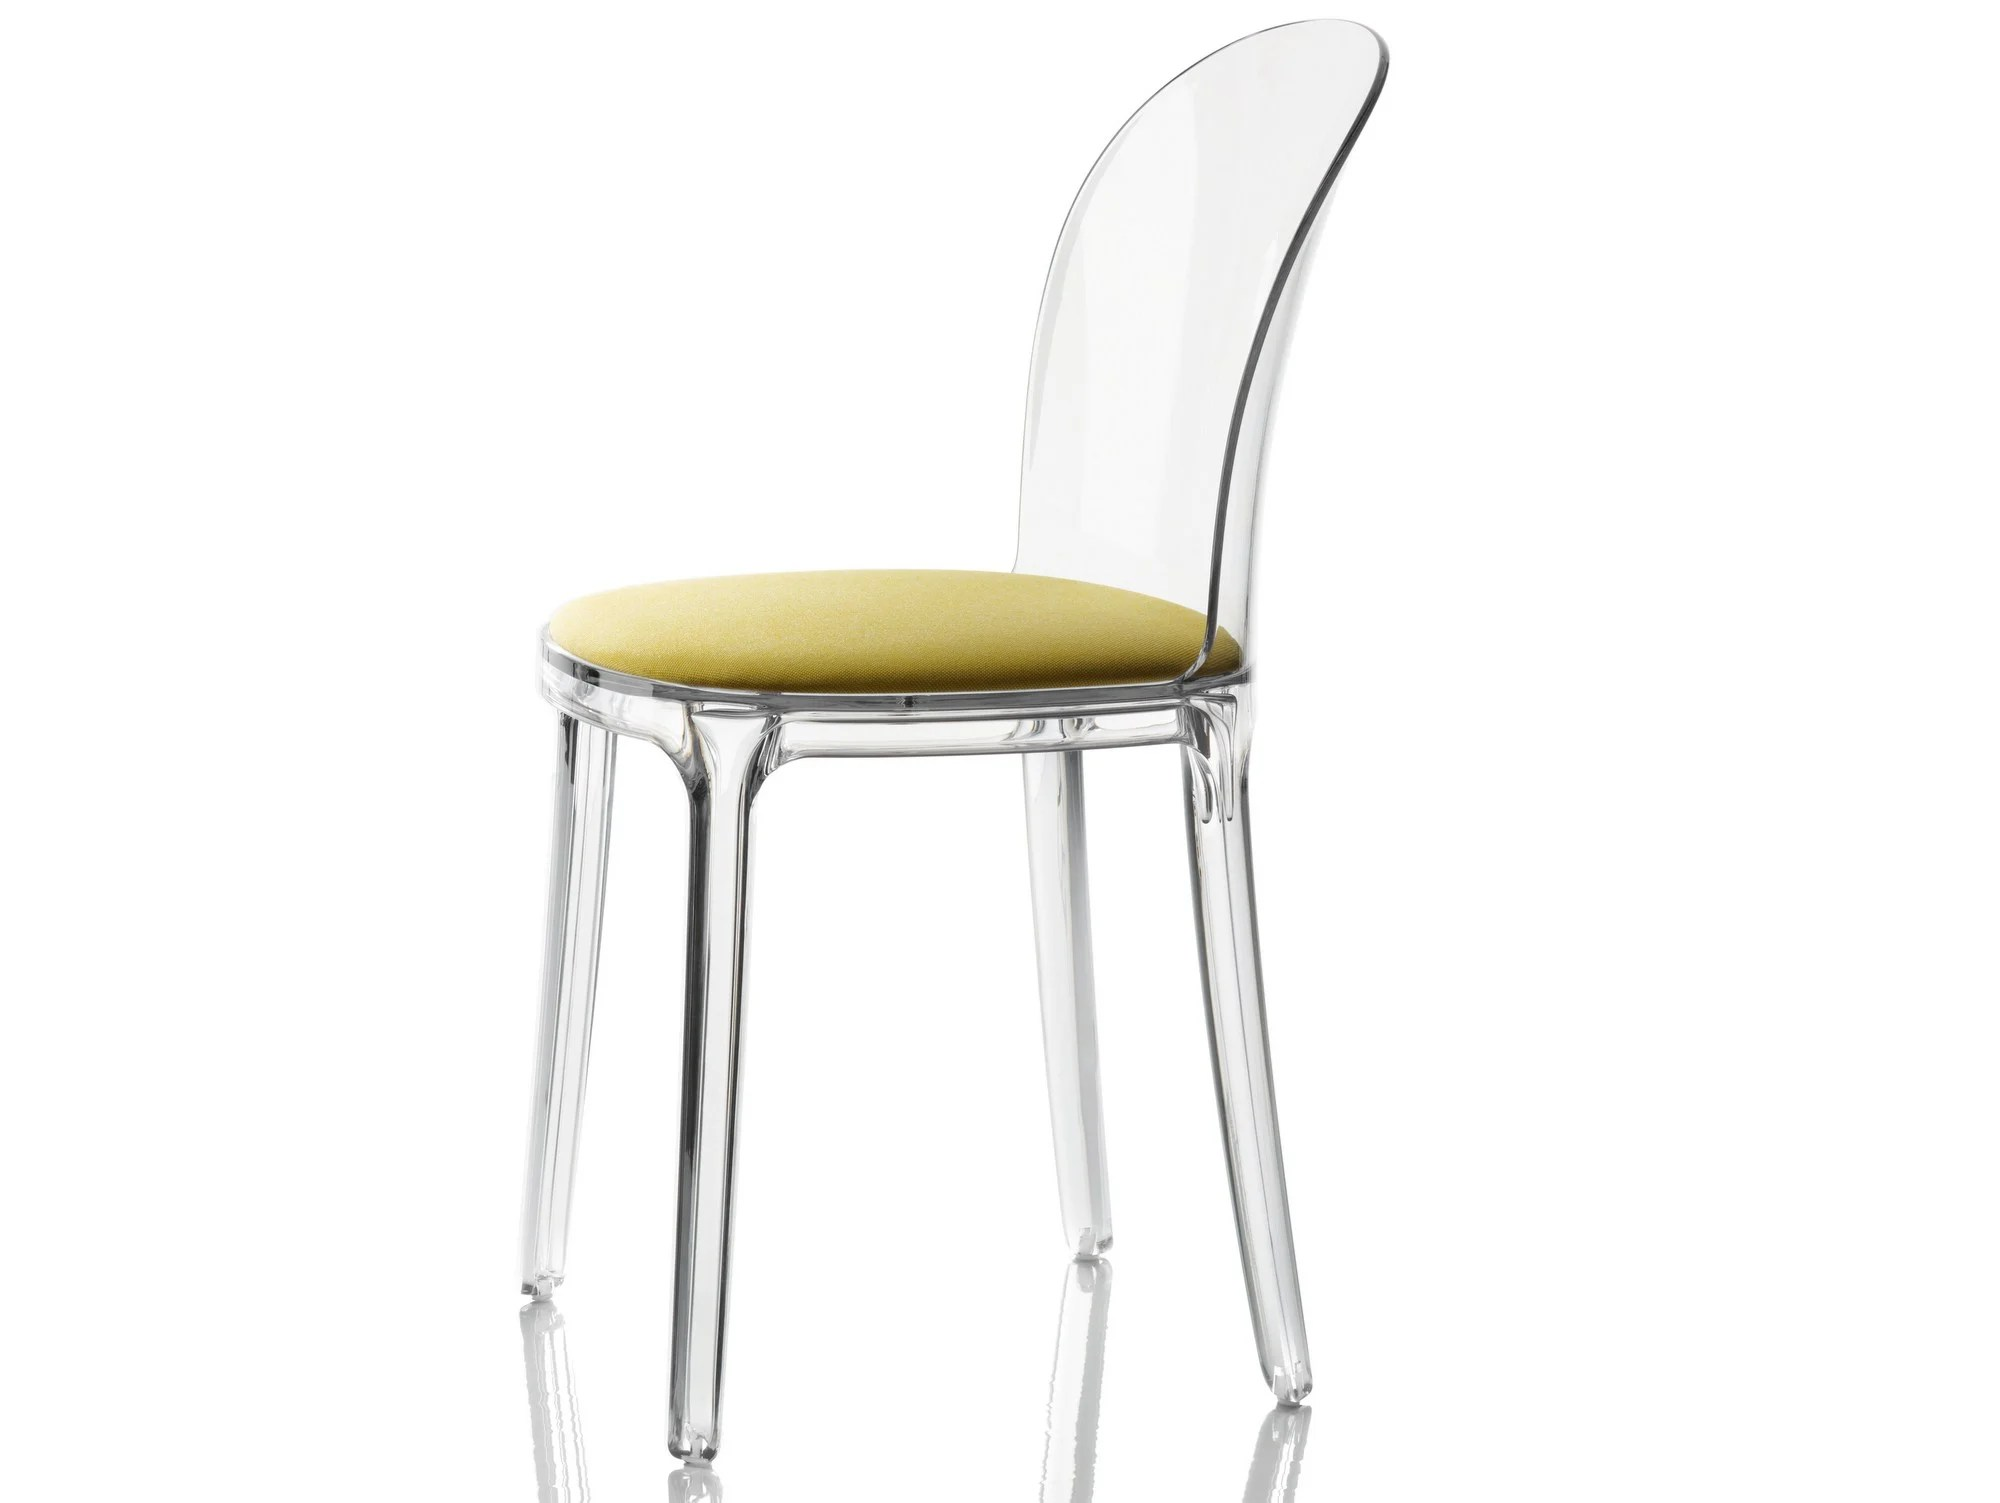 VANITY CHAIR by Magis design Stefano Giovannoni